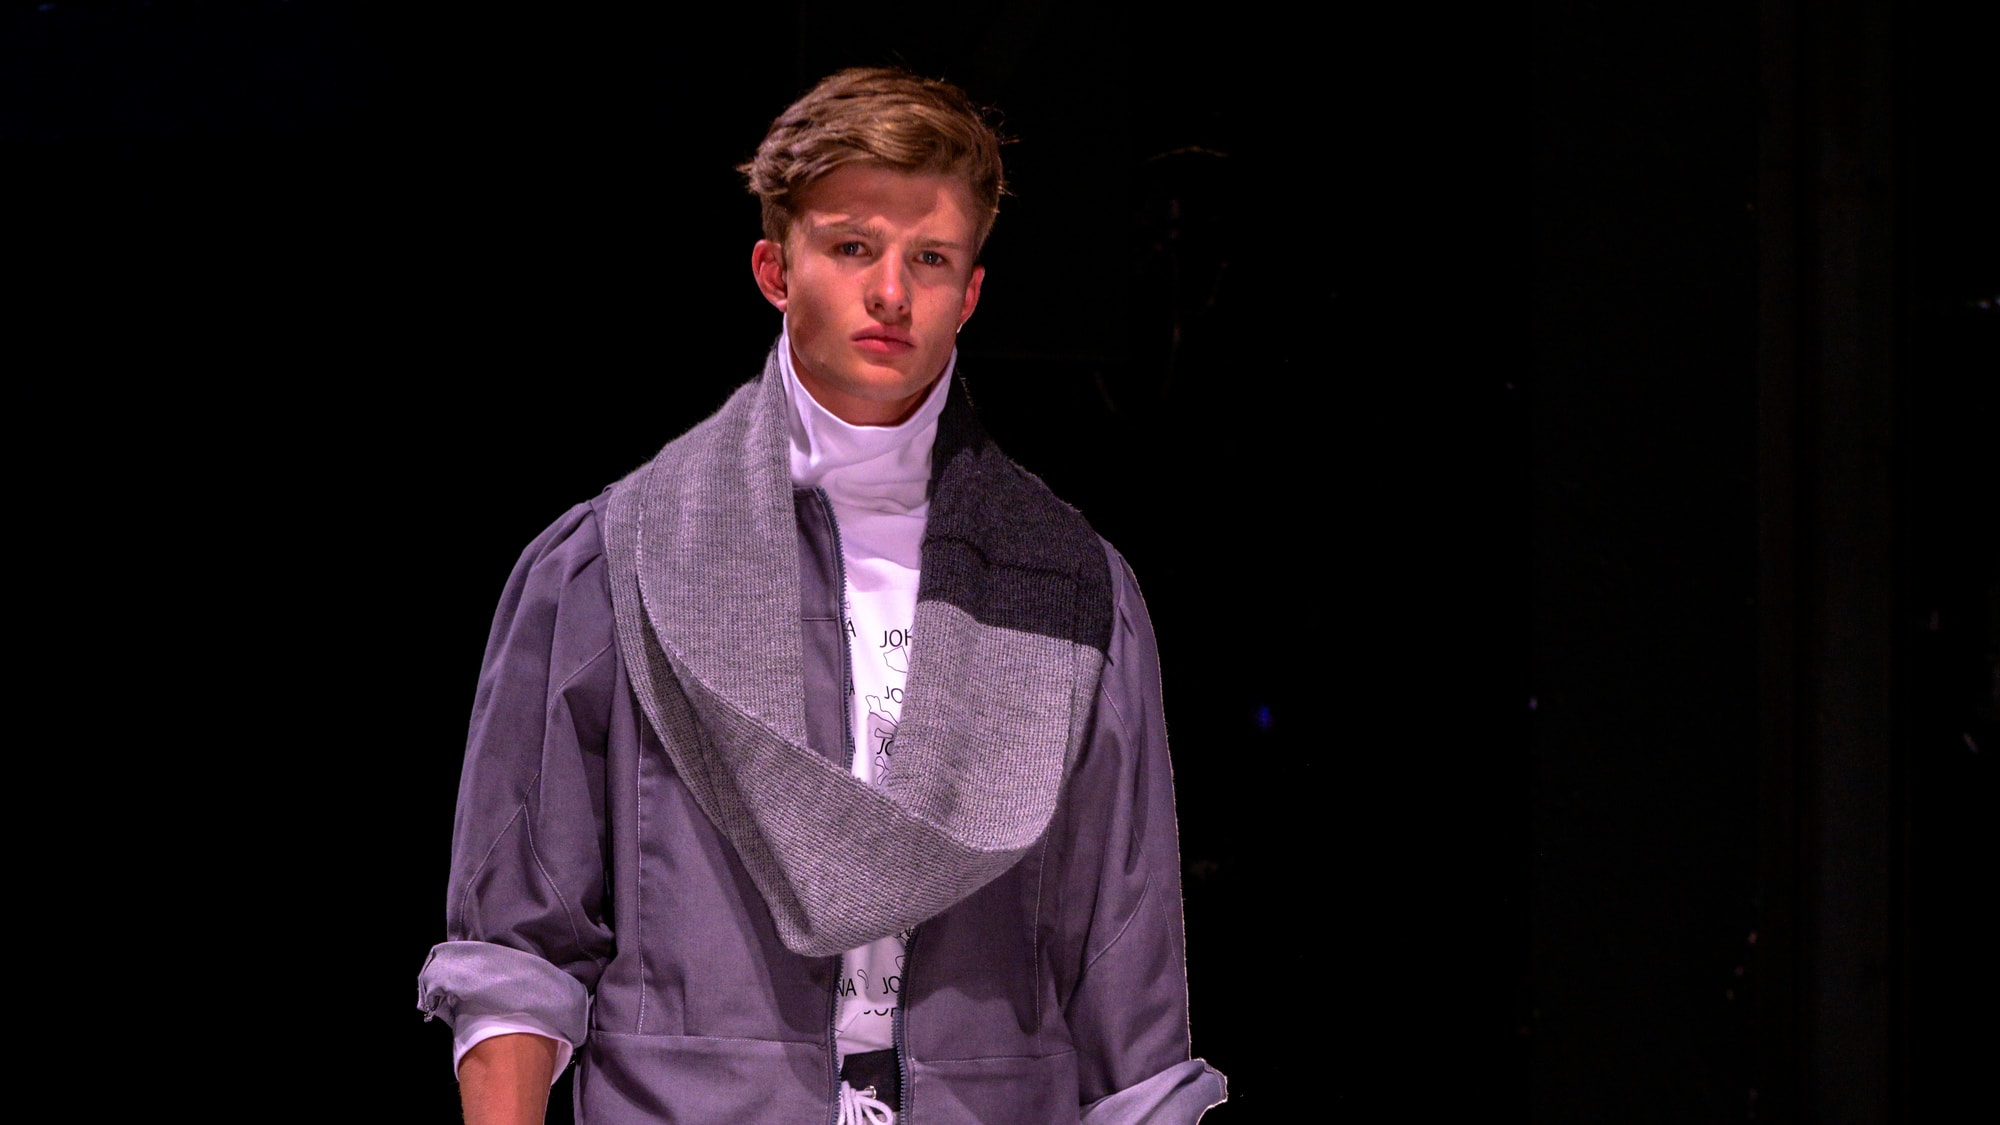 YouTube video of University of Derby student Johanna talking about her experience of studying Fashion and her third year menswear collection being showcased at Derby Theatre